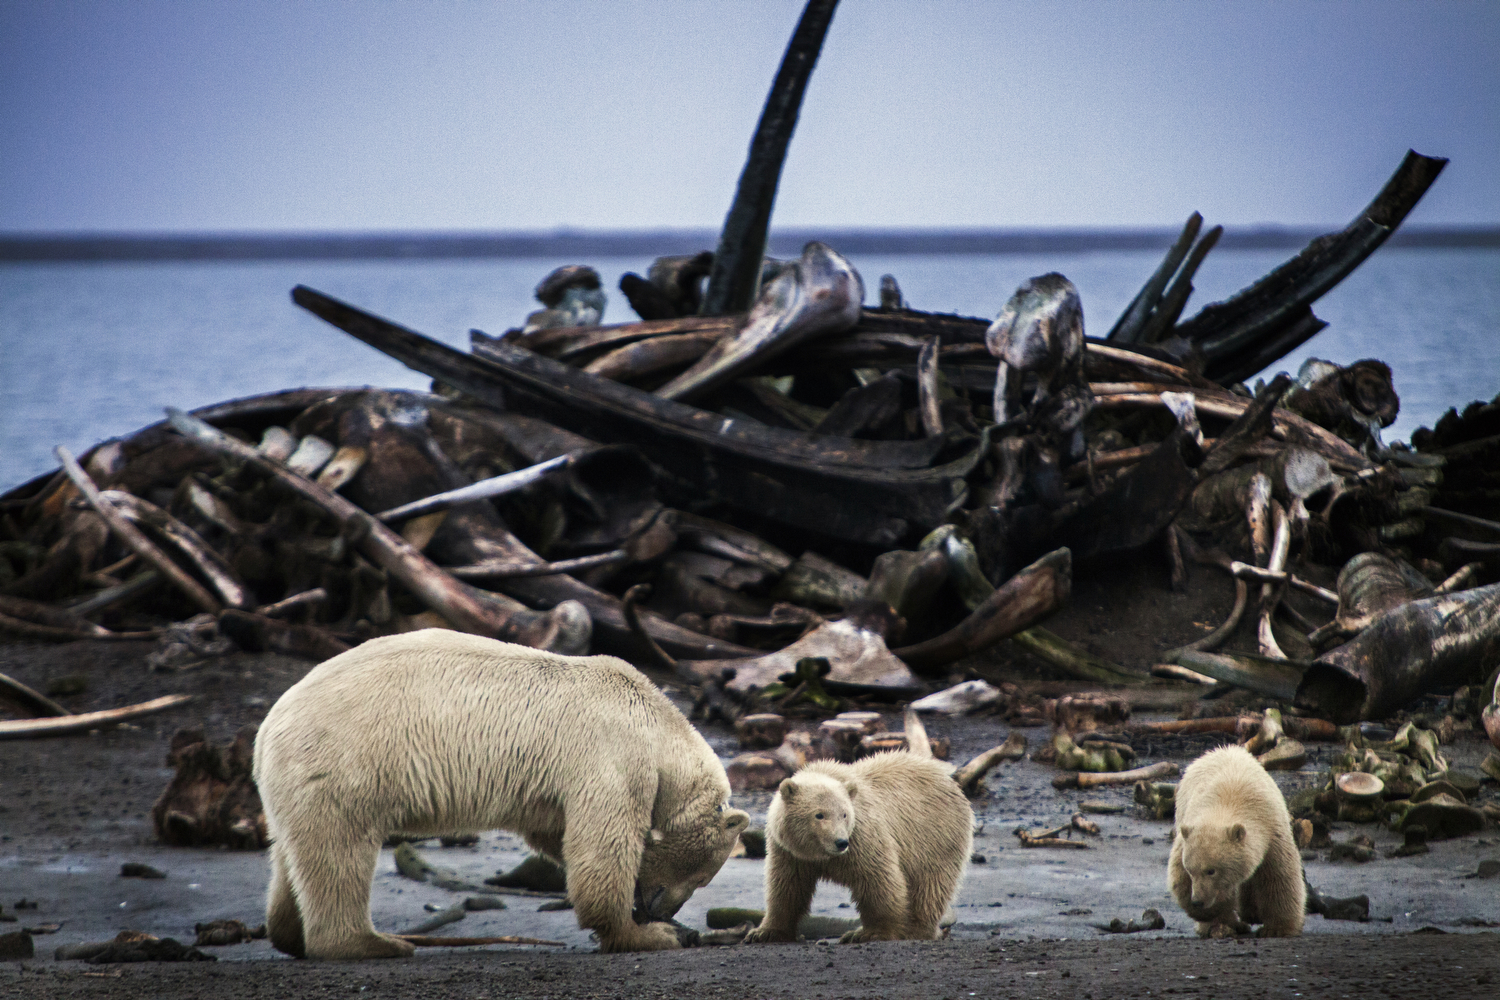 In late September polar bears flock to the native town of Kaktovik in the Alaskan Arctic to eat at  the boneyard : the remains of whales annually hunted by the community.